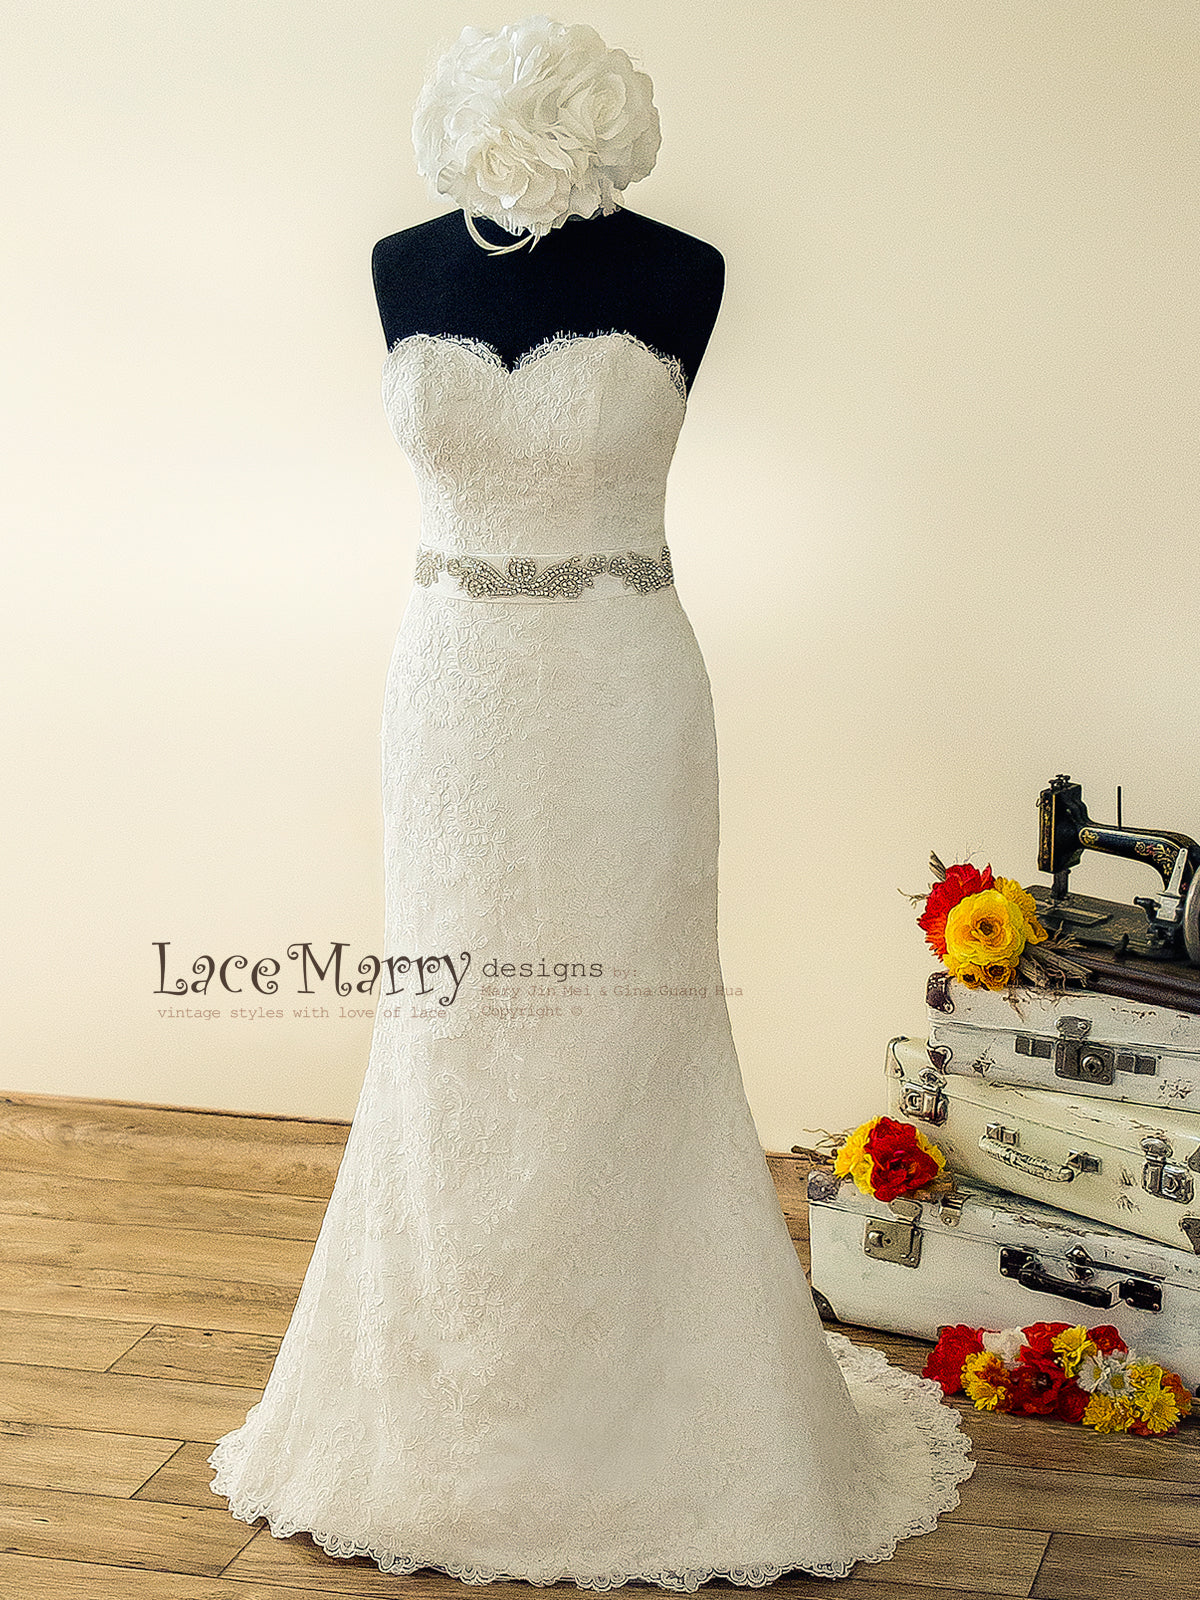 Strapless Lace Wedding Dress in Slim A Line Silhouette